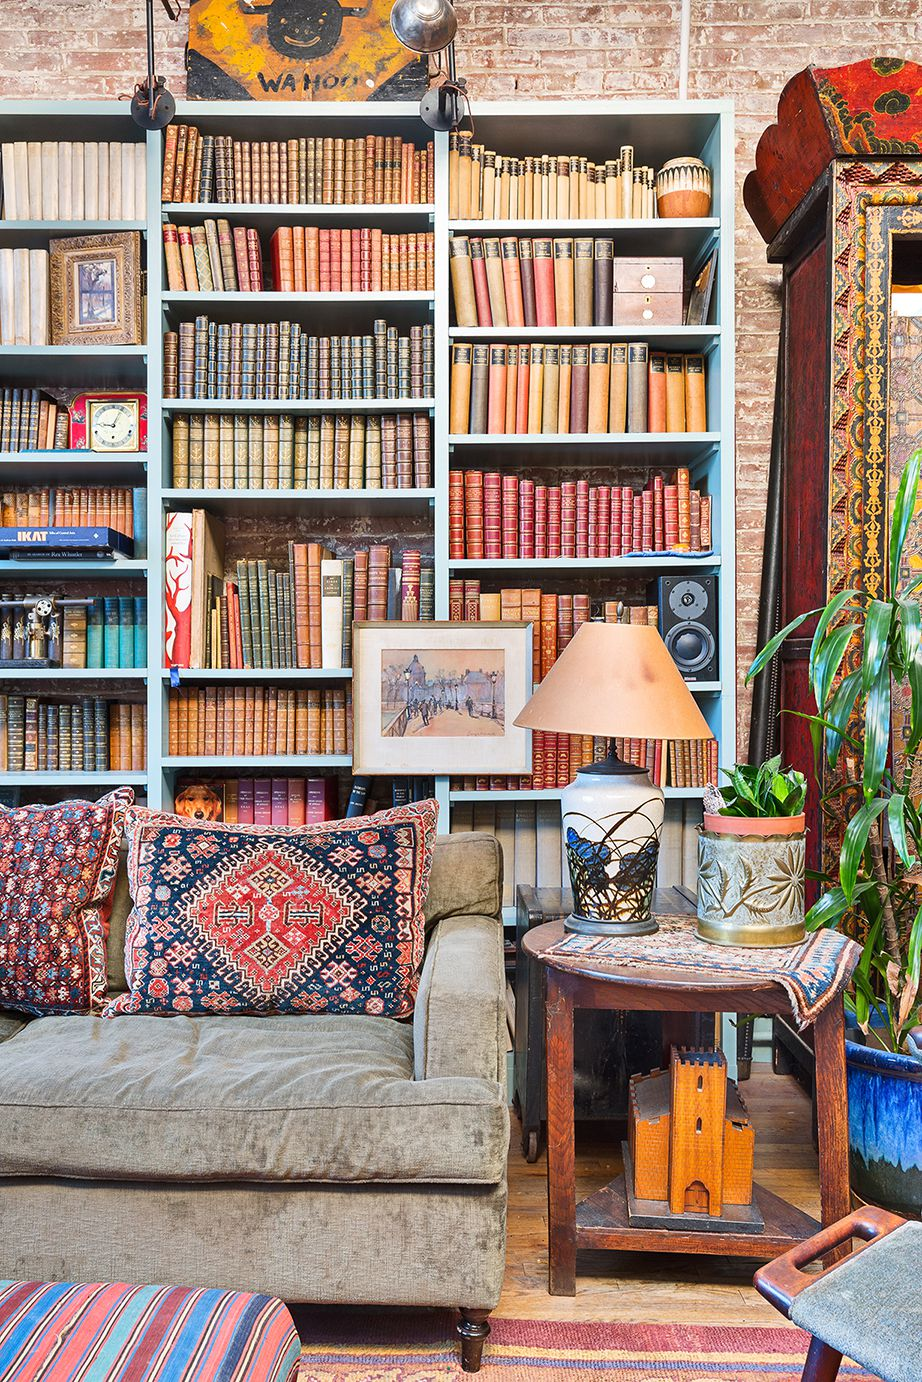 A large blue bookshelf behind a green couch.